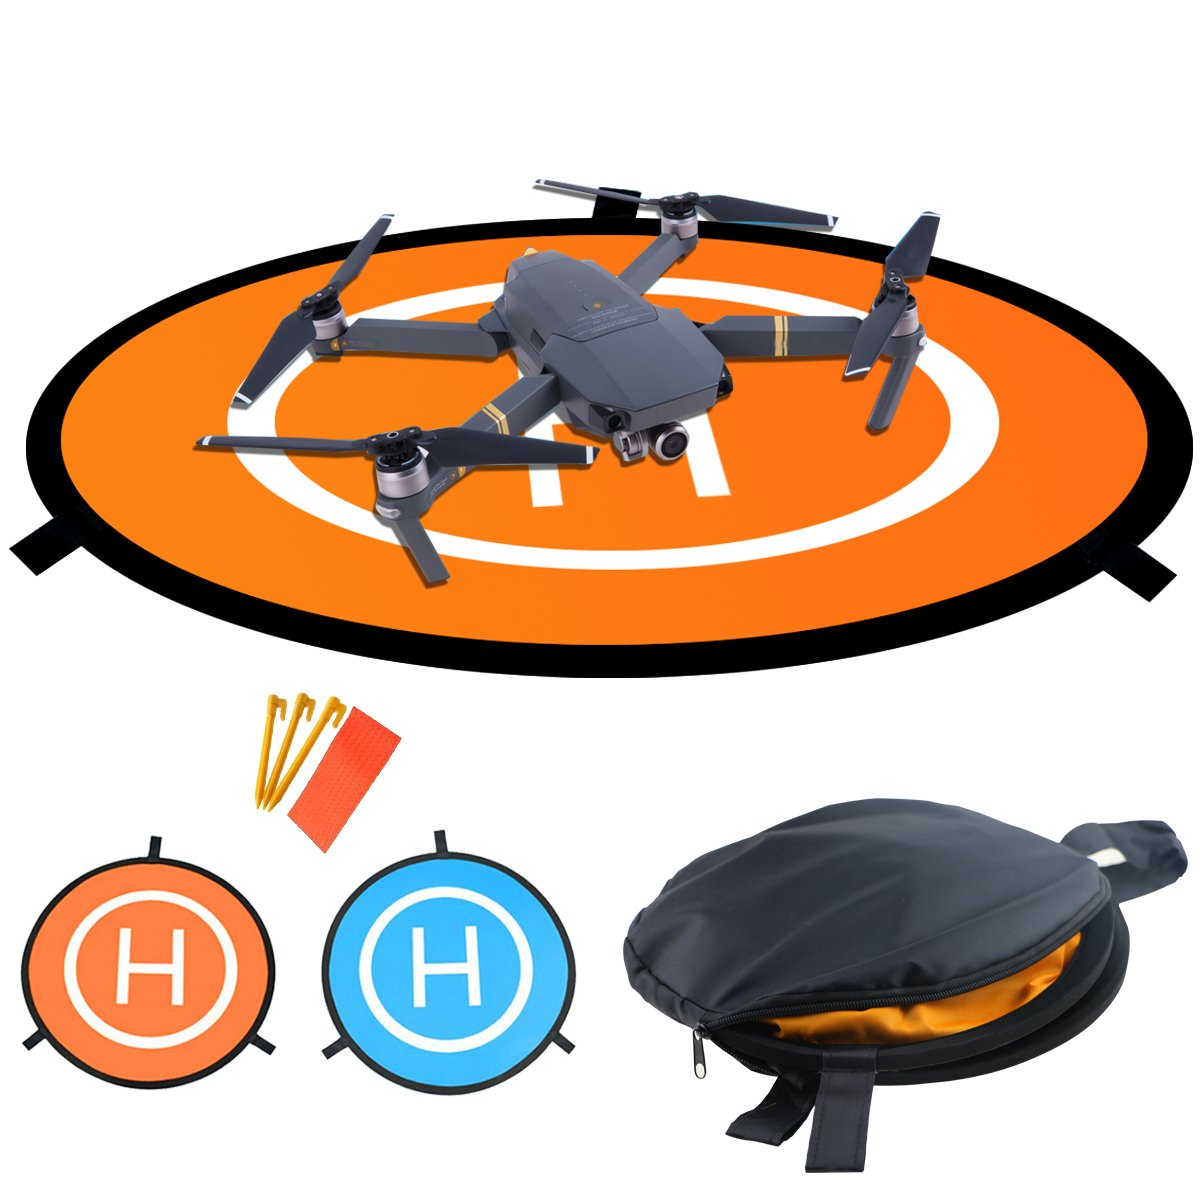 Drones Landing Pad,Homga Universal Waterproof D 75cm/30'' Portable Foldable Landing Pads For RC Drones Helicopter, PVB Drones, DJI Mavic Pro Phantom 2/3/4/ Pro, Antel Robotic, 3DR Solo & More